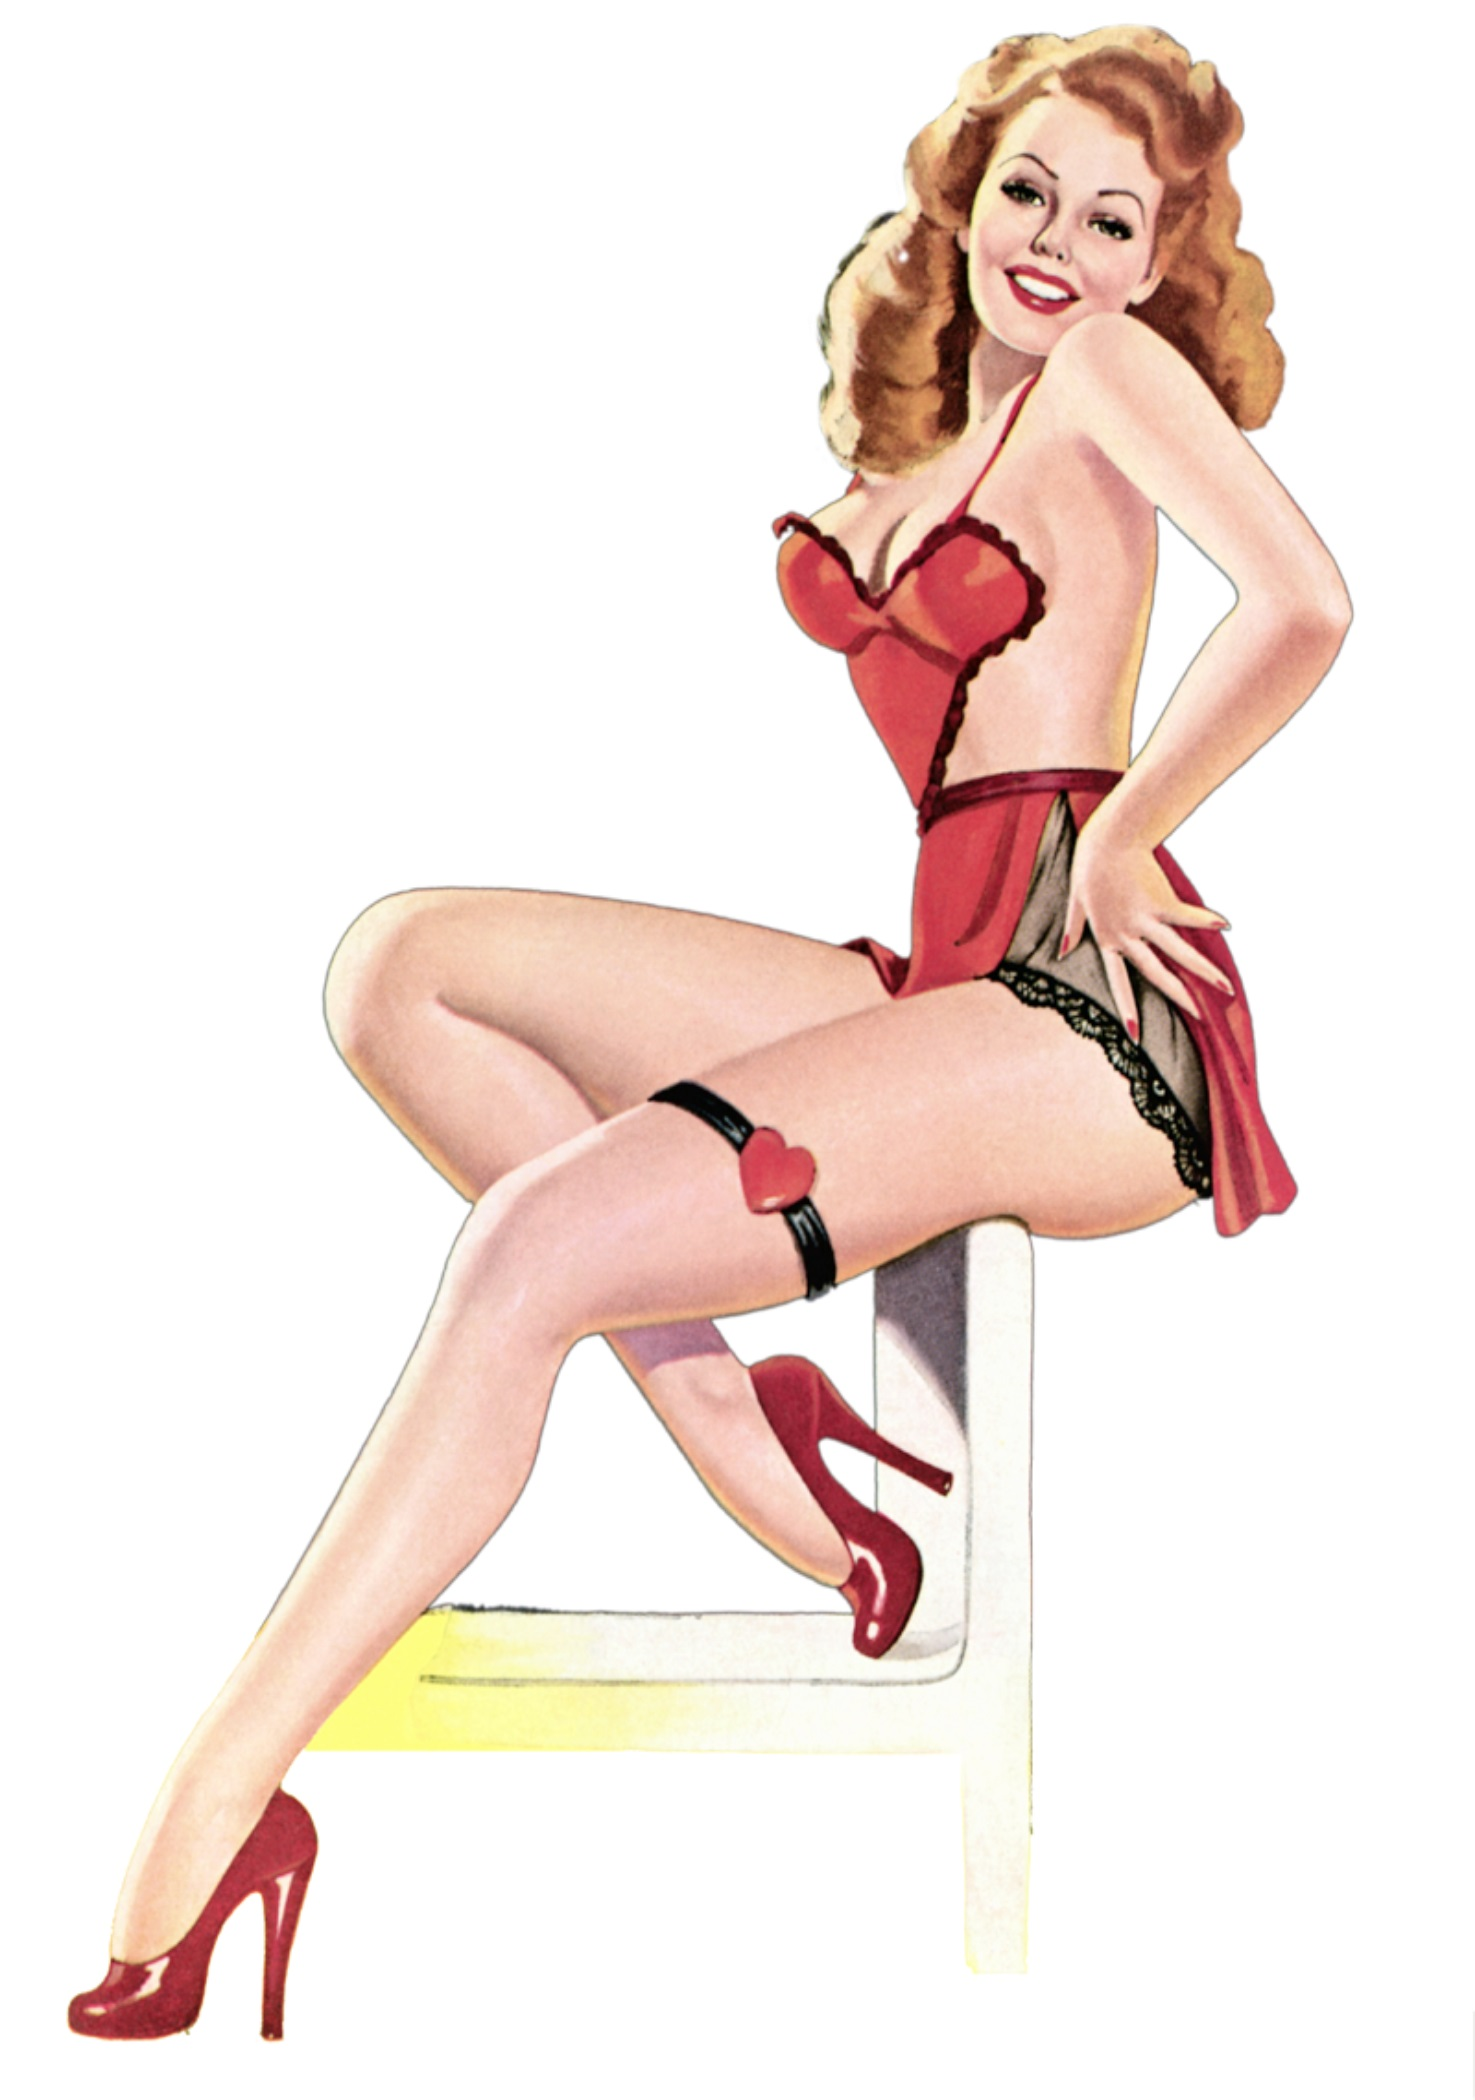 sexy red lingerie pin up girl pop map poster classic vintage retro kraft decorative maps wall. Black Bedroom Furniture Sets. Home Design Ideas